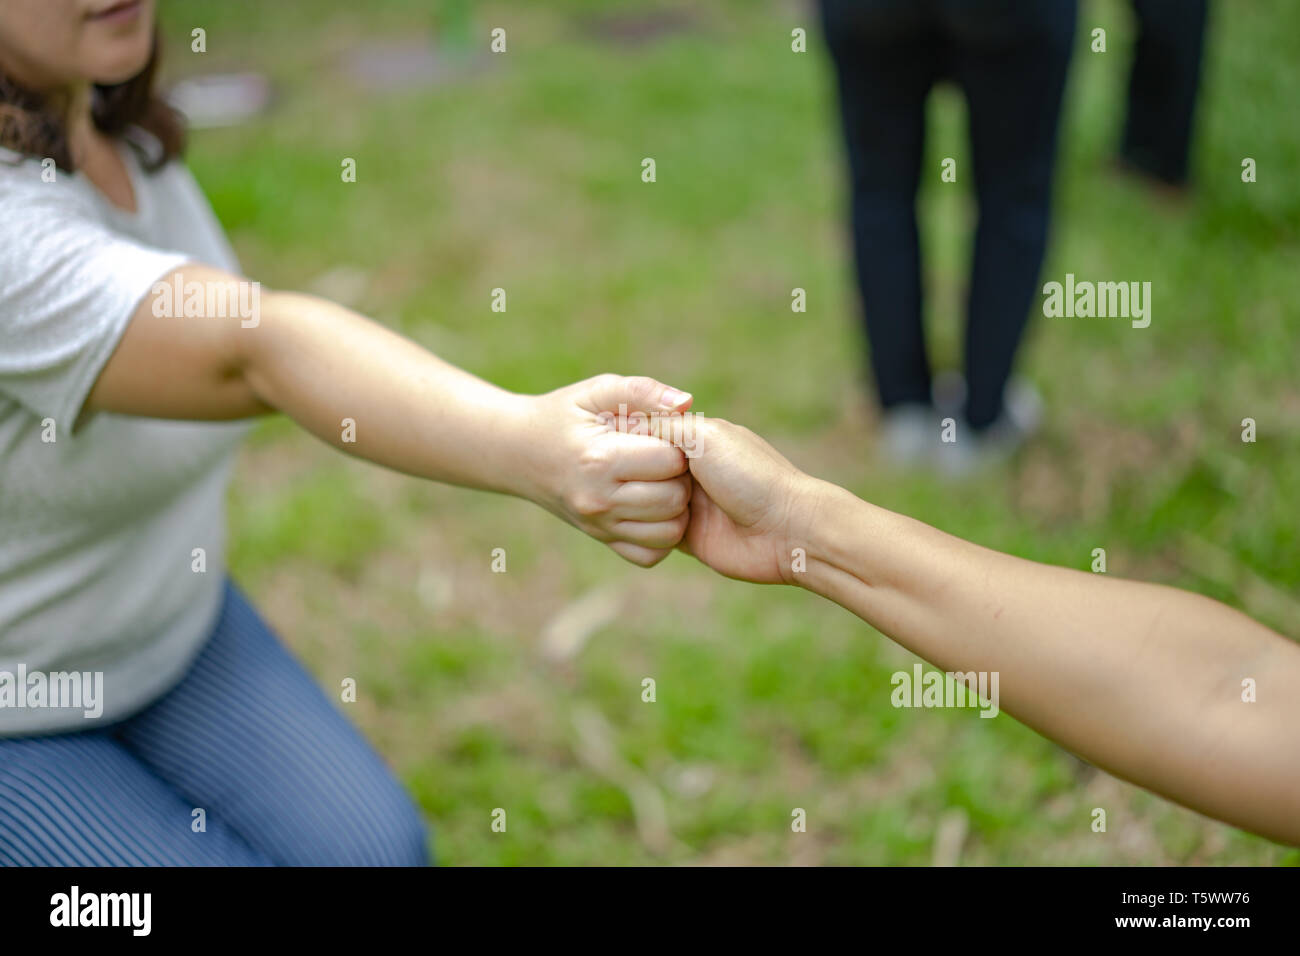 hand holds together in the community in the garden / park. - Stock Image